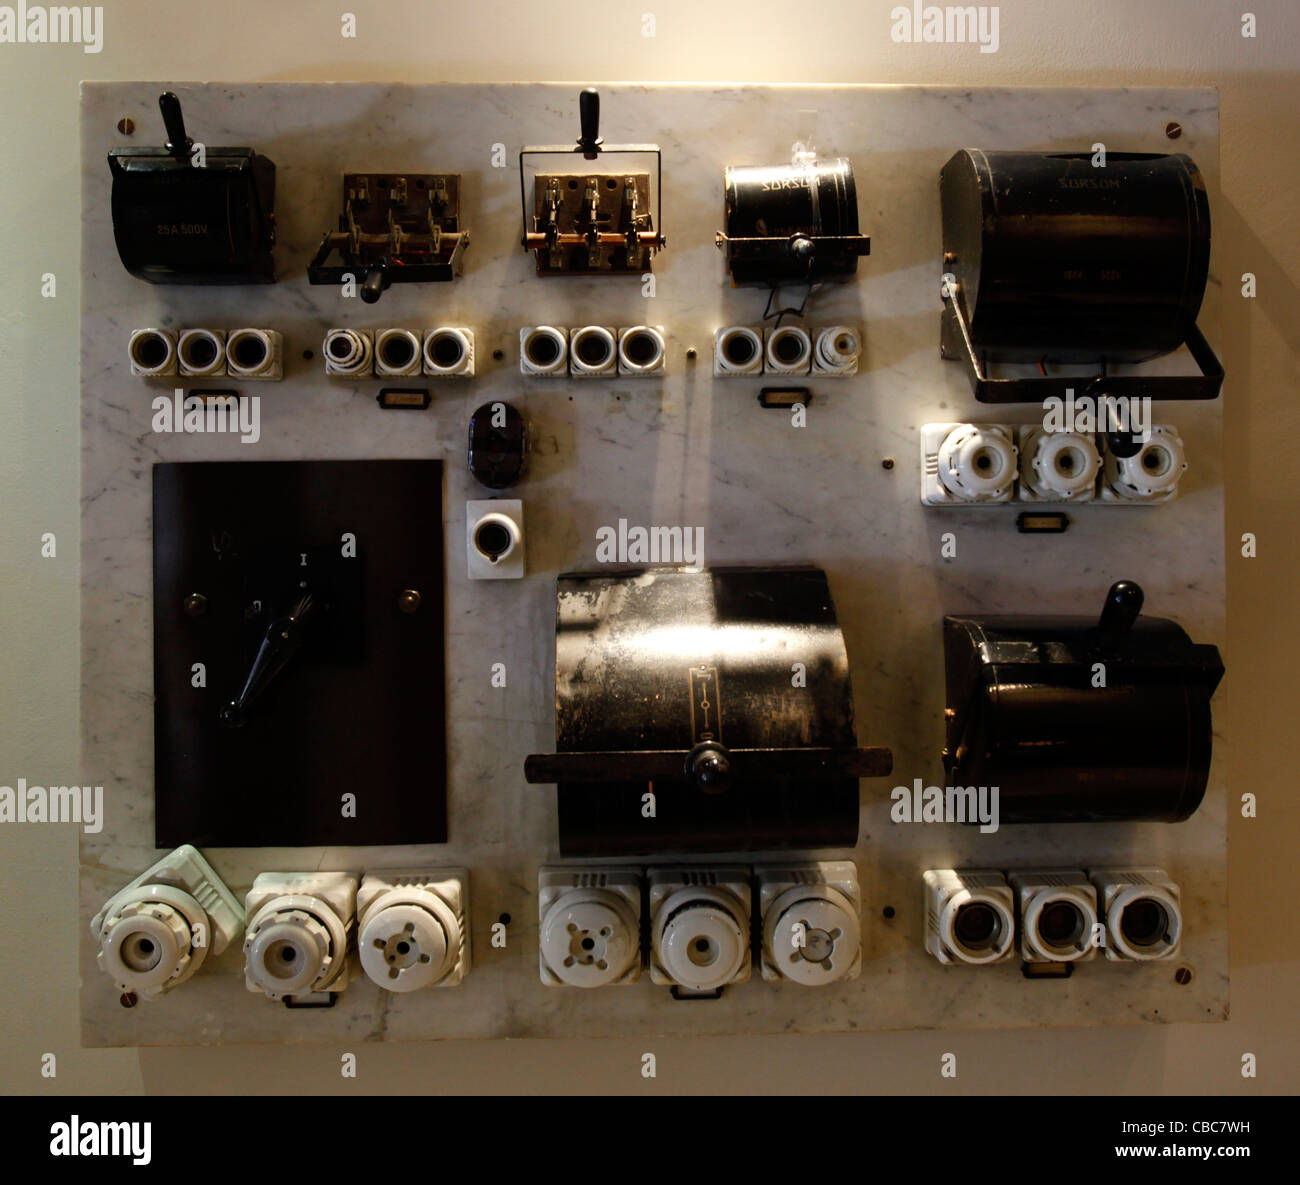 an old electric fuse box switchboard with ceramic fuses CBC7WH early 1900s fuse box 2004 ford fuse box diagram \u2022 wiring diagrams how to change fuses in fuse box at soozxer.org